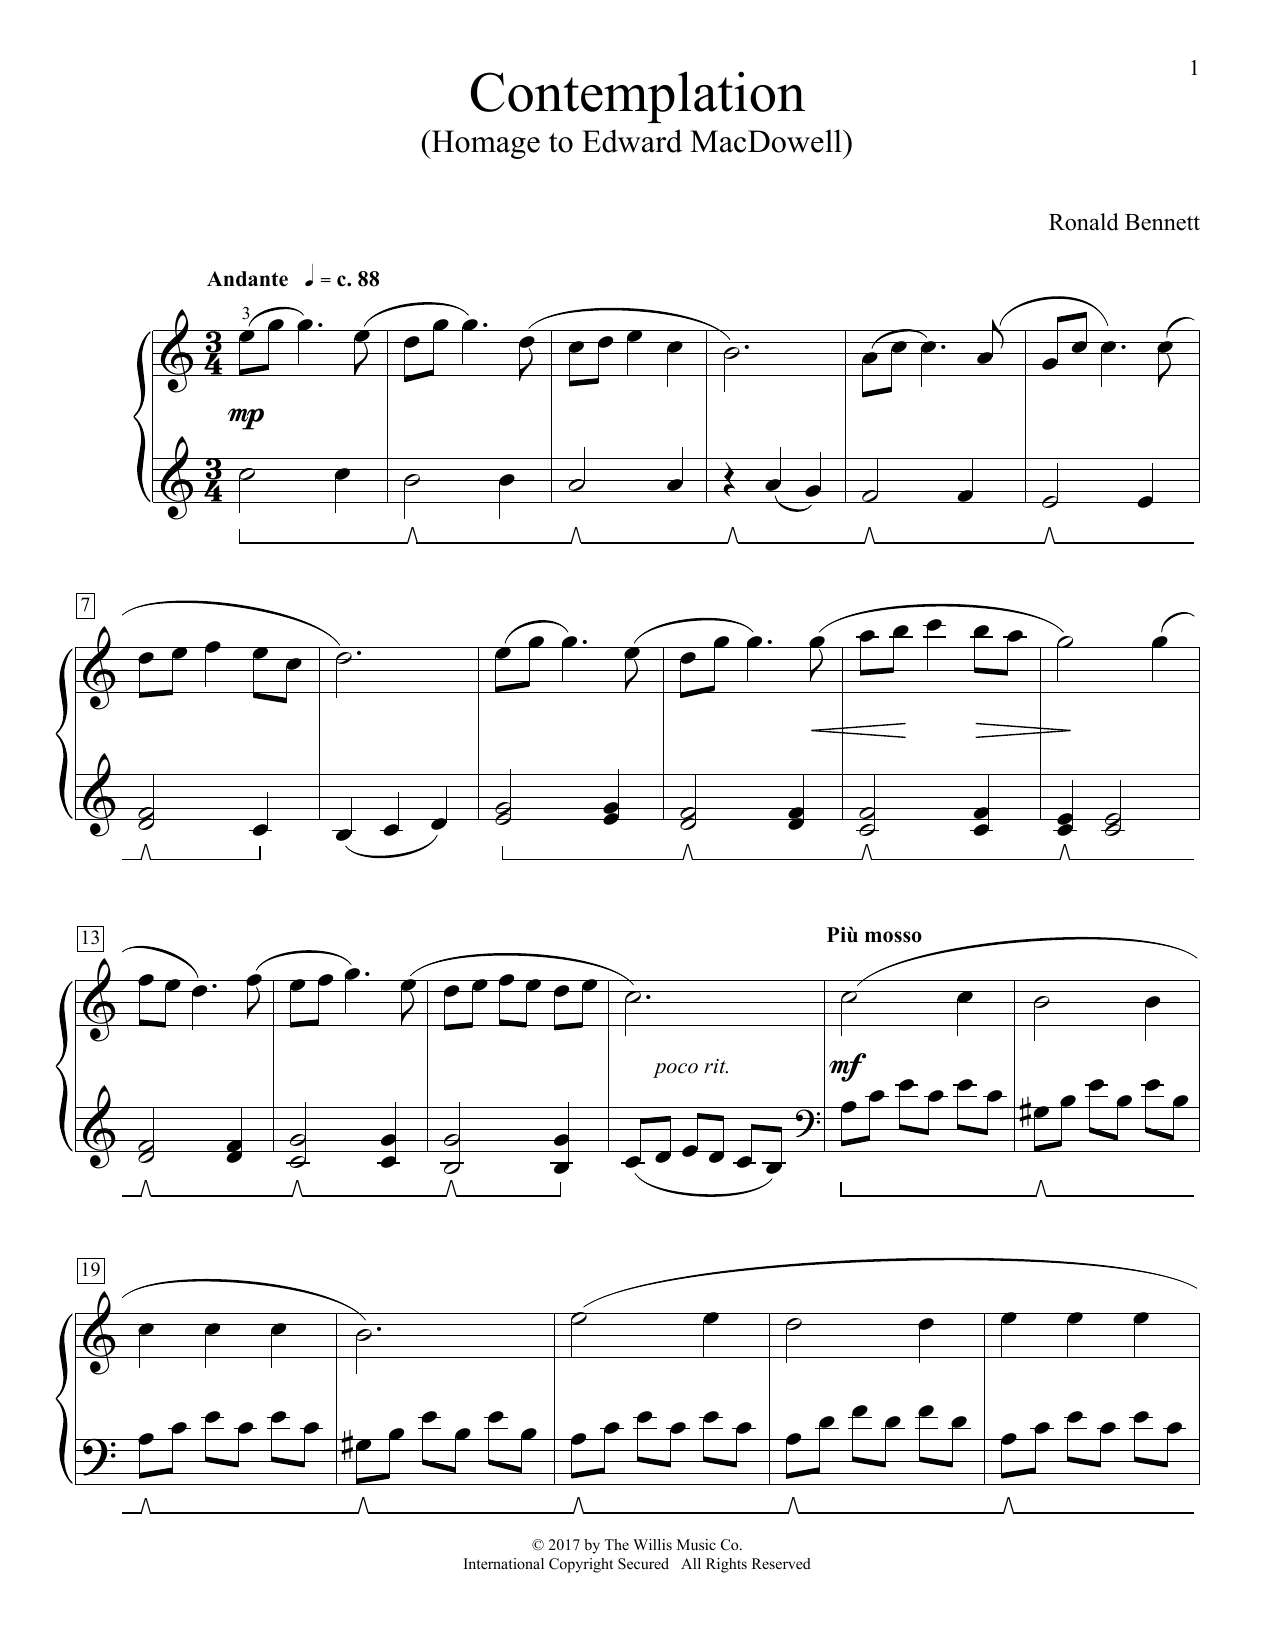 Ronald Bennett Contemplation (Homage To Edward MacDowell) sheet music notes and chords. Download Printable PDF.